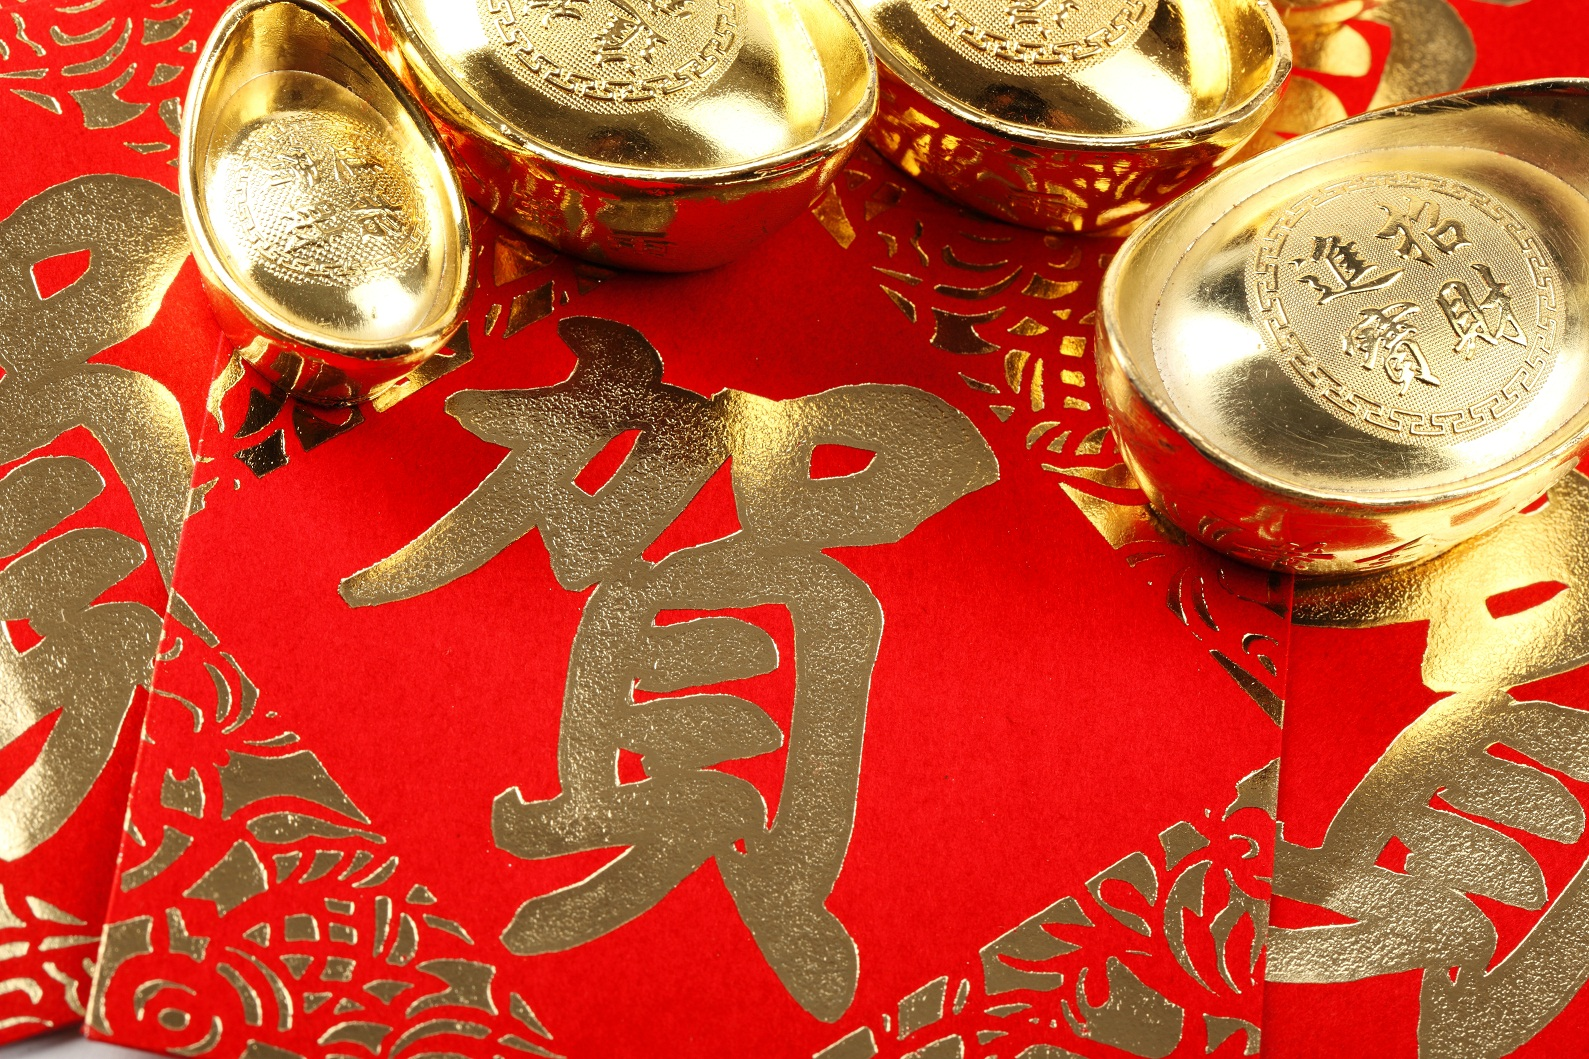 It's a grand Chinese New Year celebration at Diamond Hotel Philippines